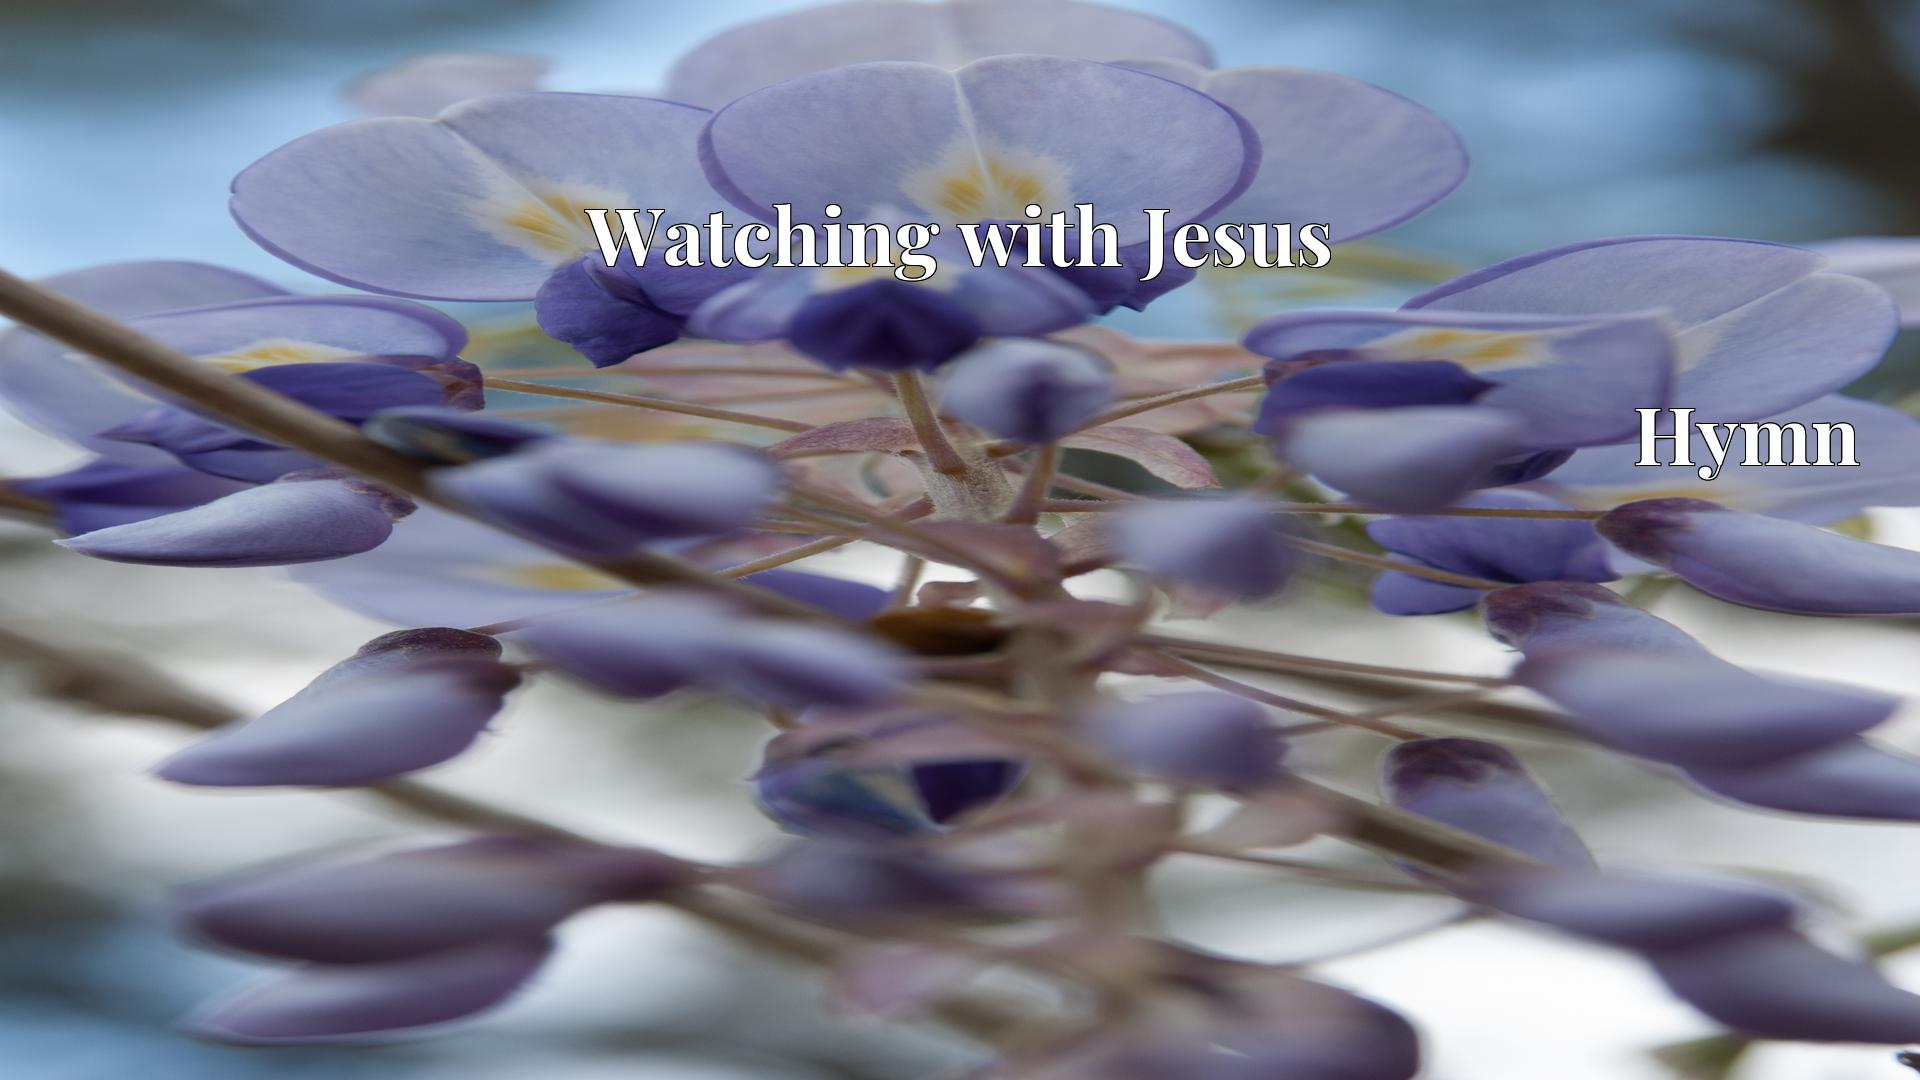 Watching with Jesus Hymn